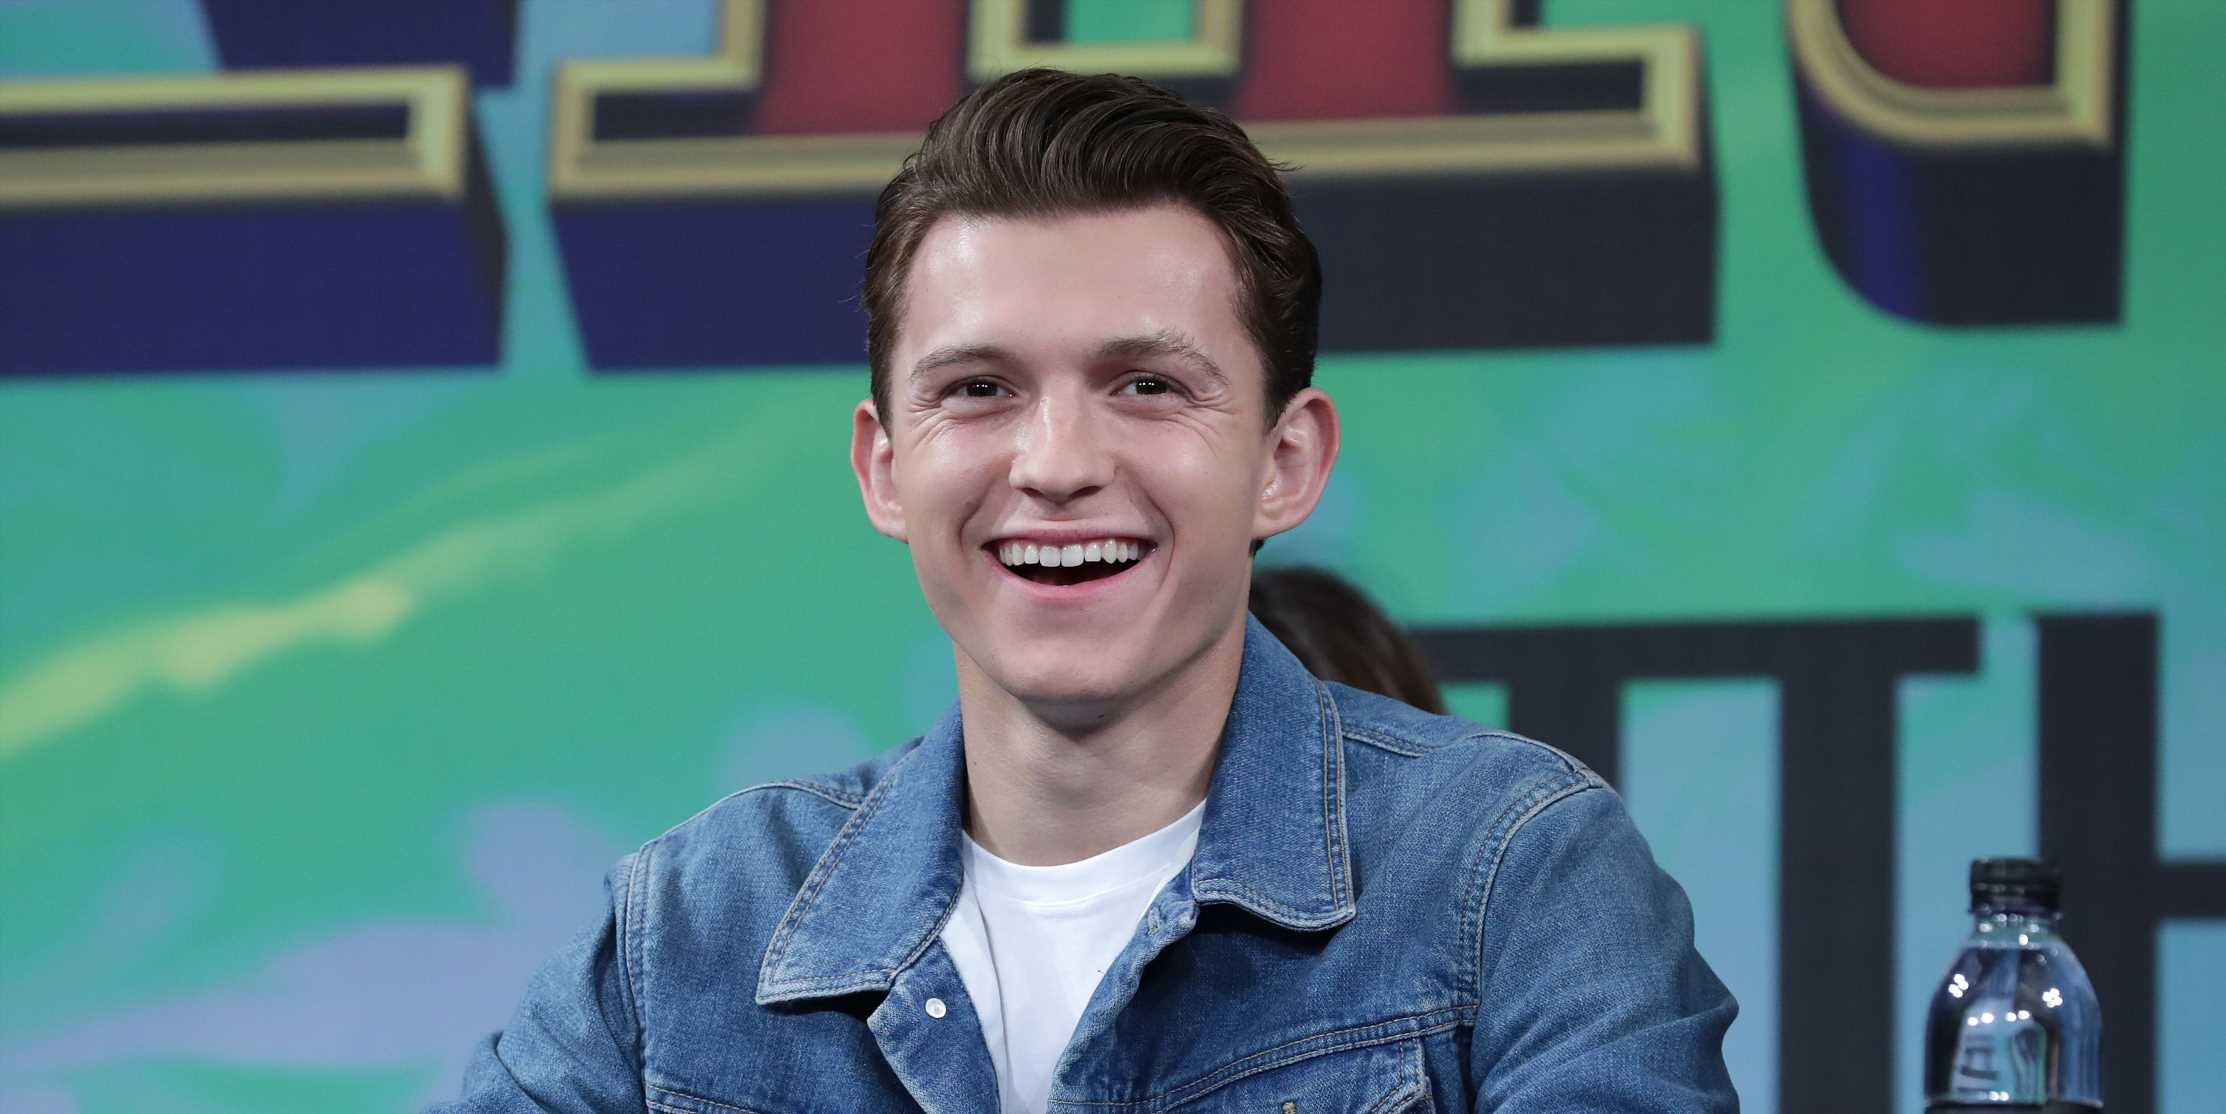 Tom Holland Thinks Spider-Man Could Be Gay 'One Day'